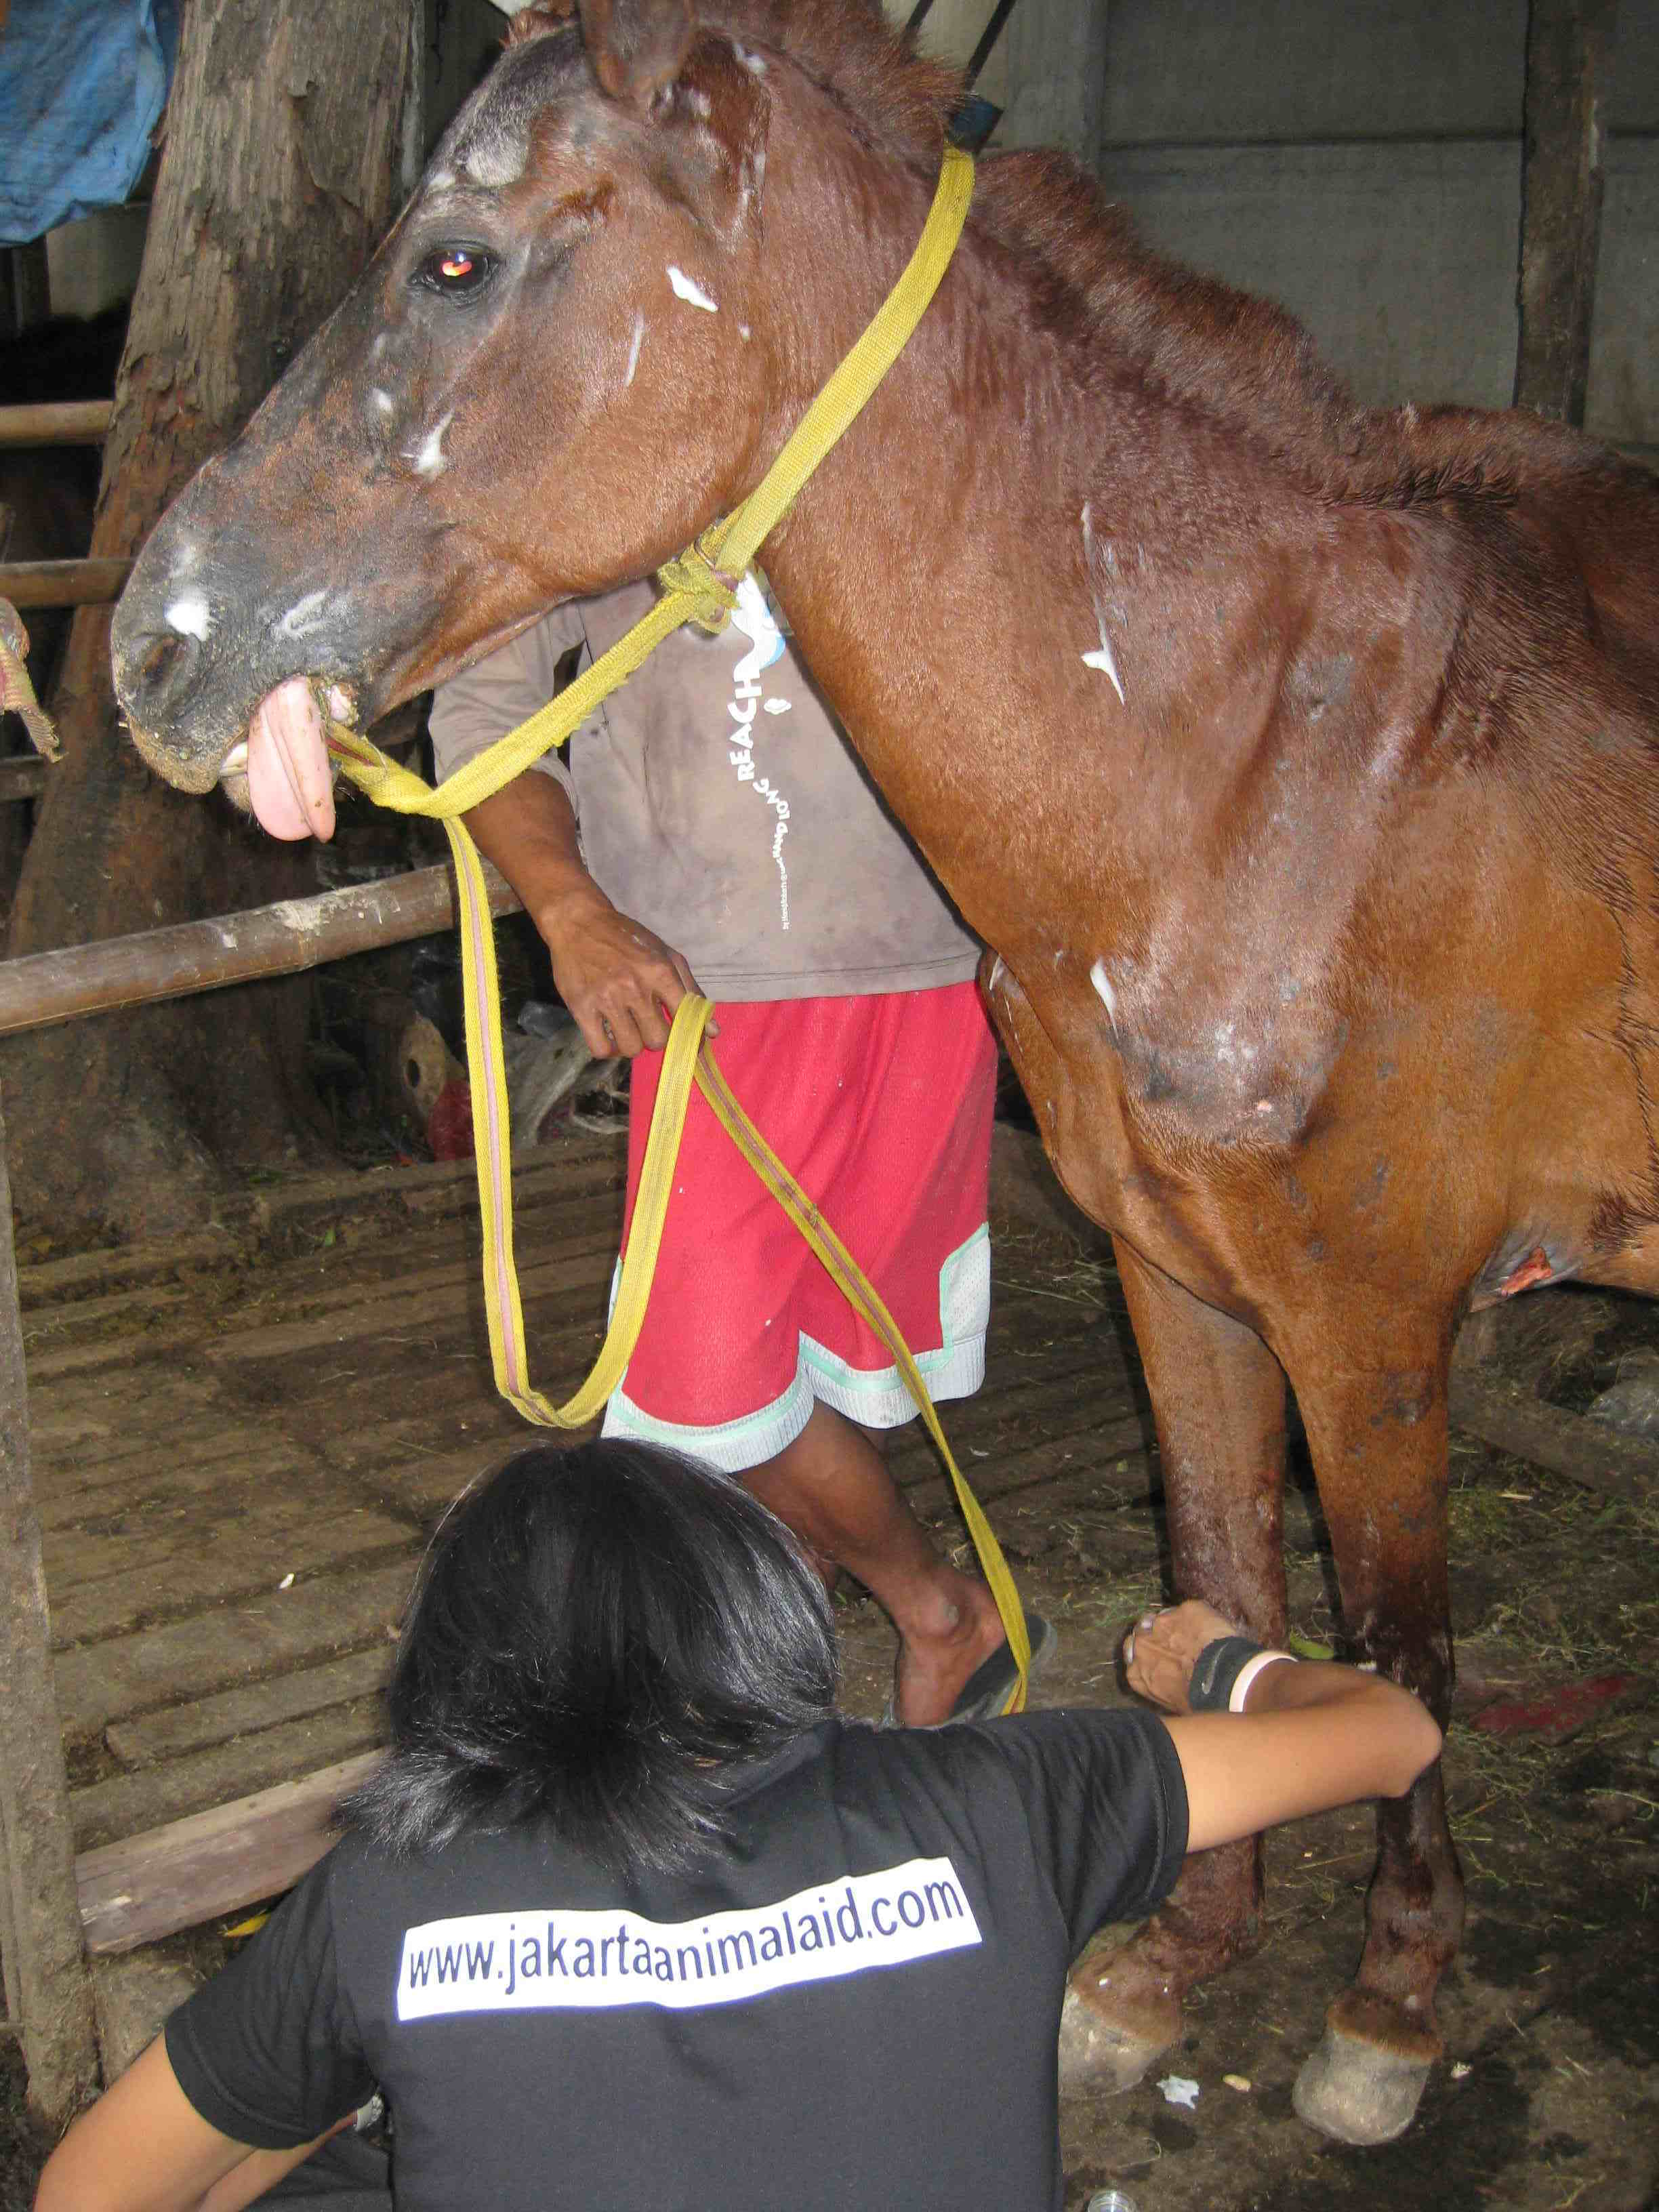 Sharing knowledge on basic horse care to the handlers.